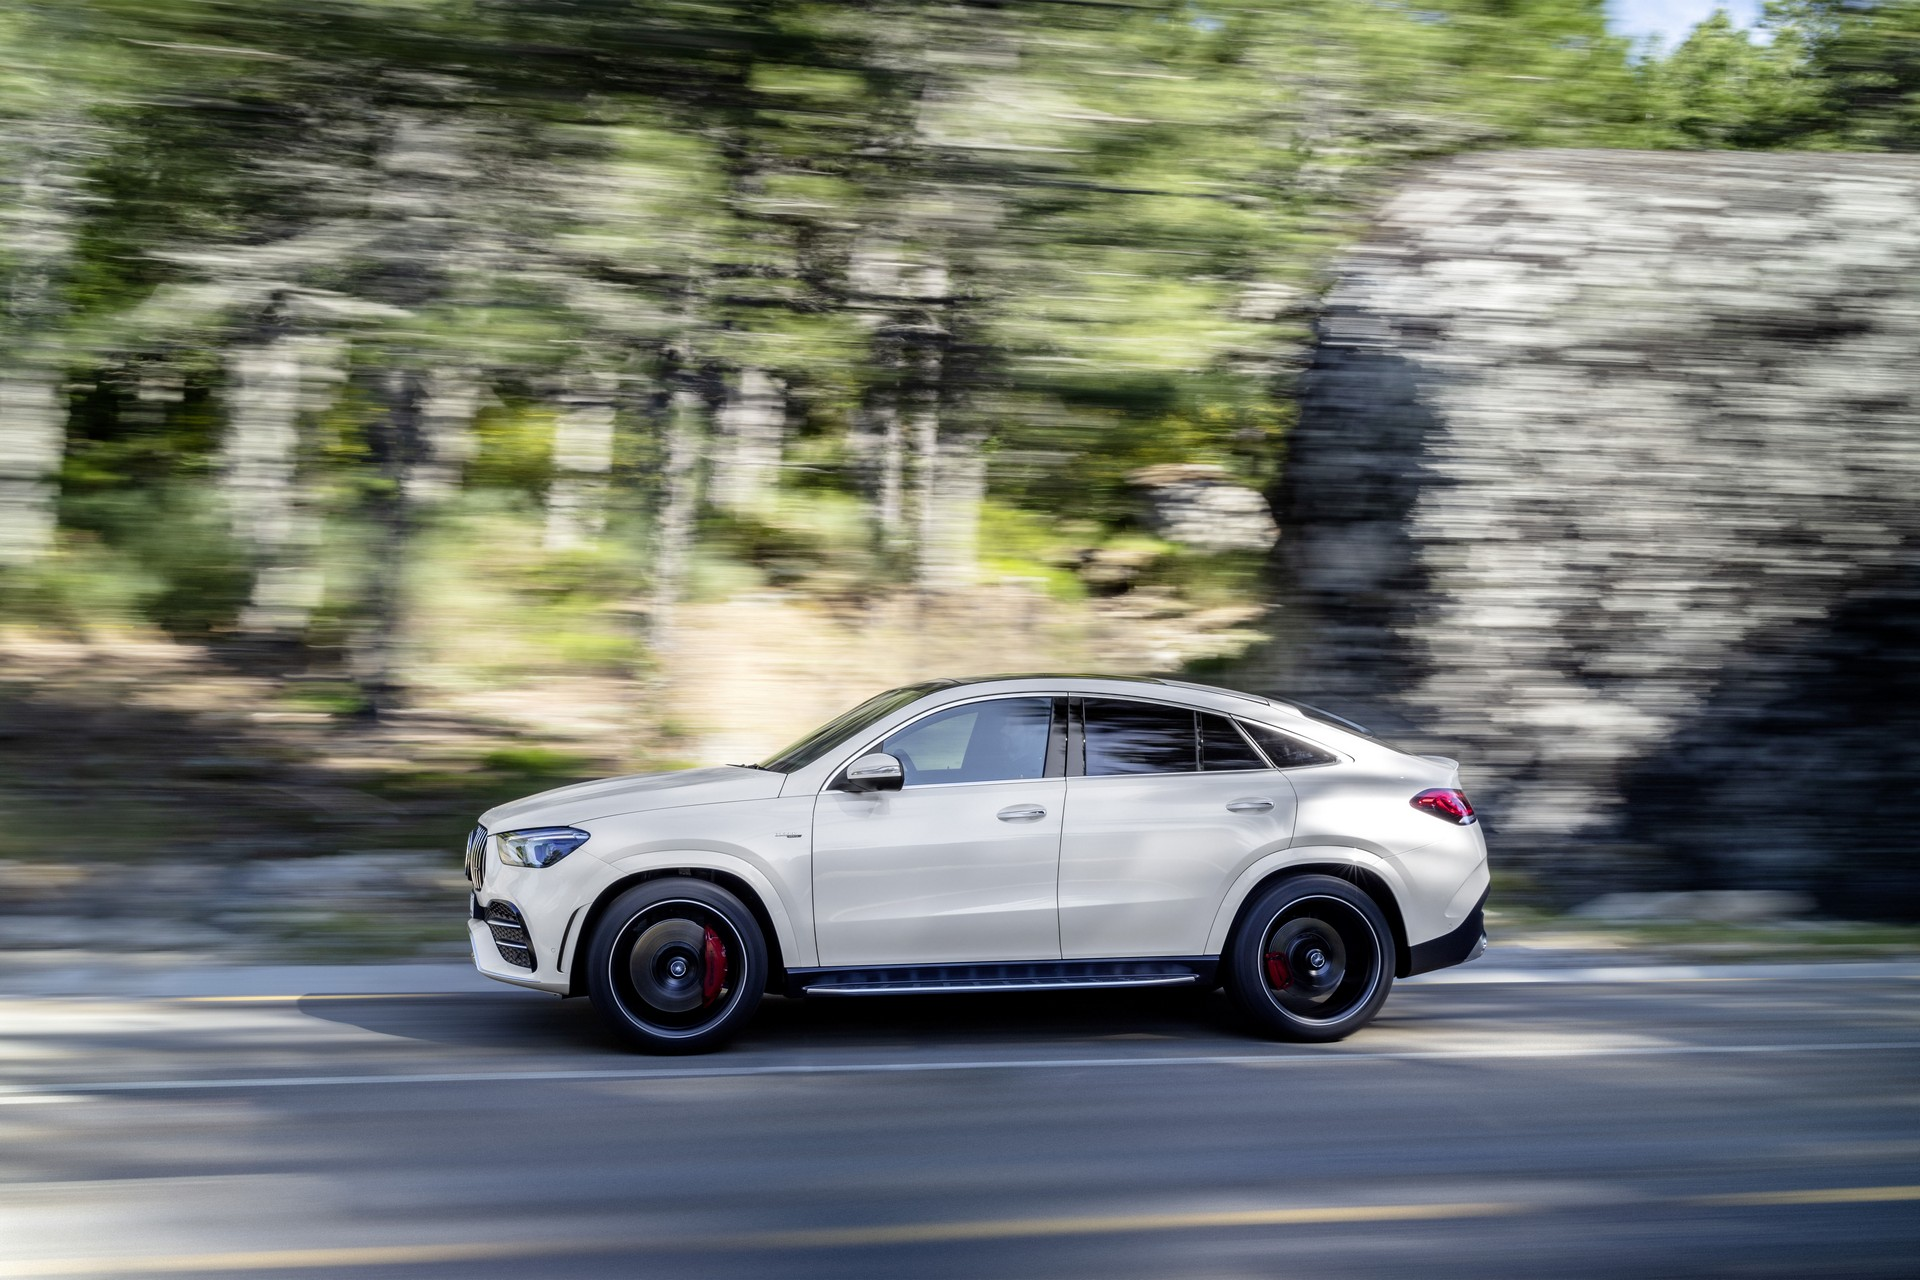 Mercedes-Benz GLE Coupe is one sleek SUV